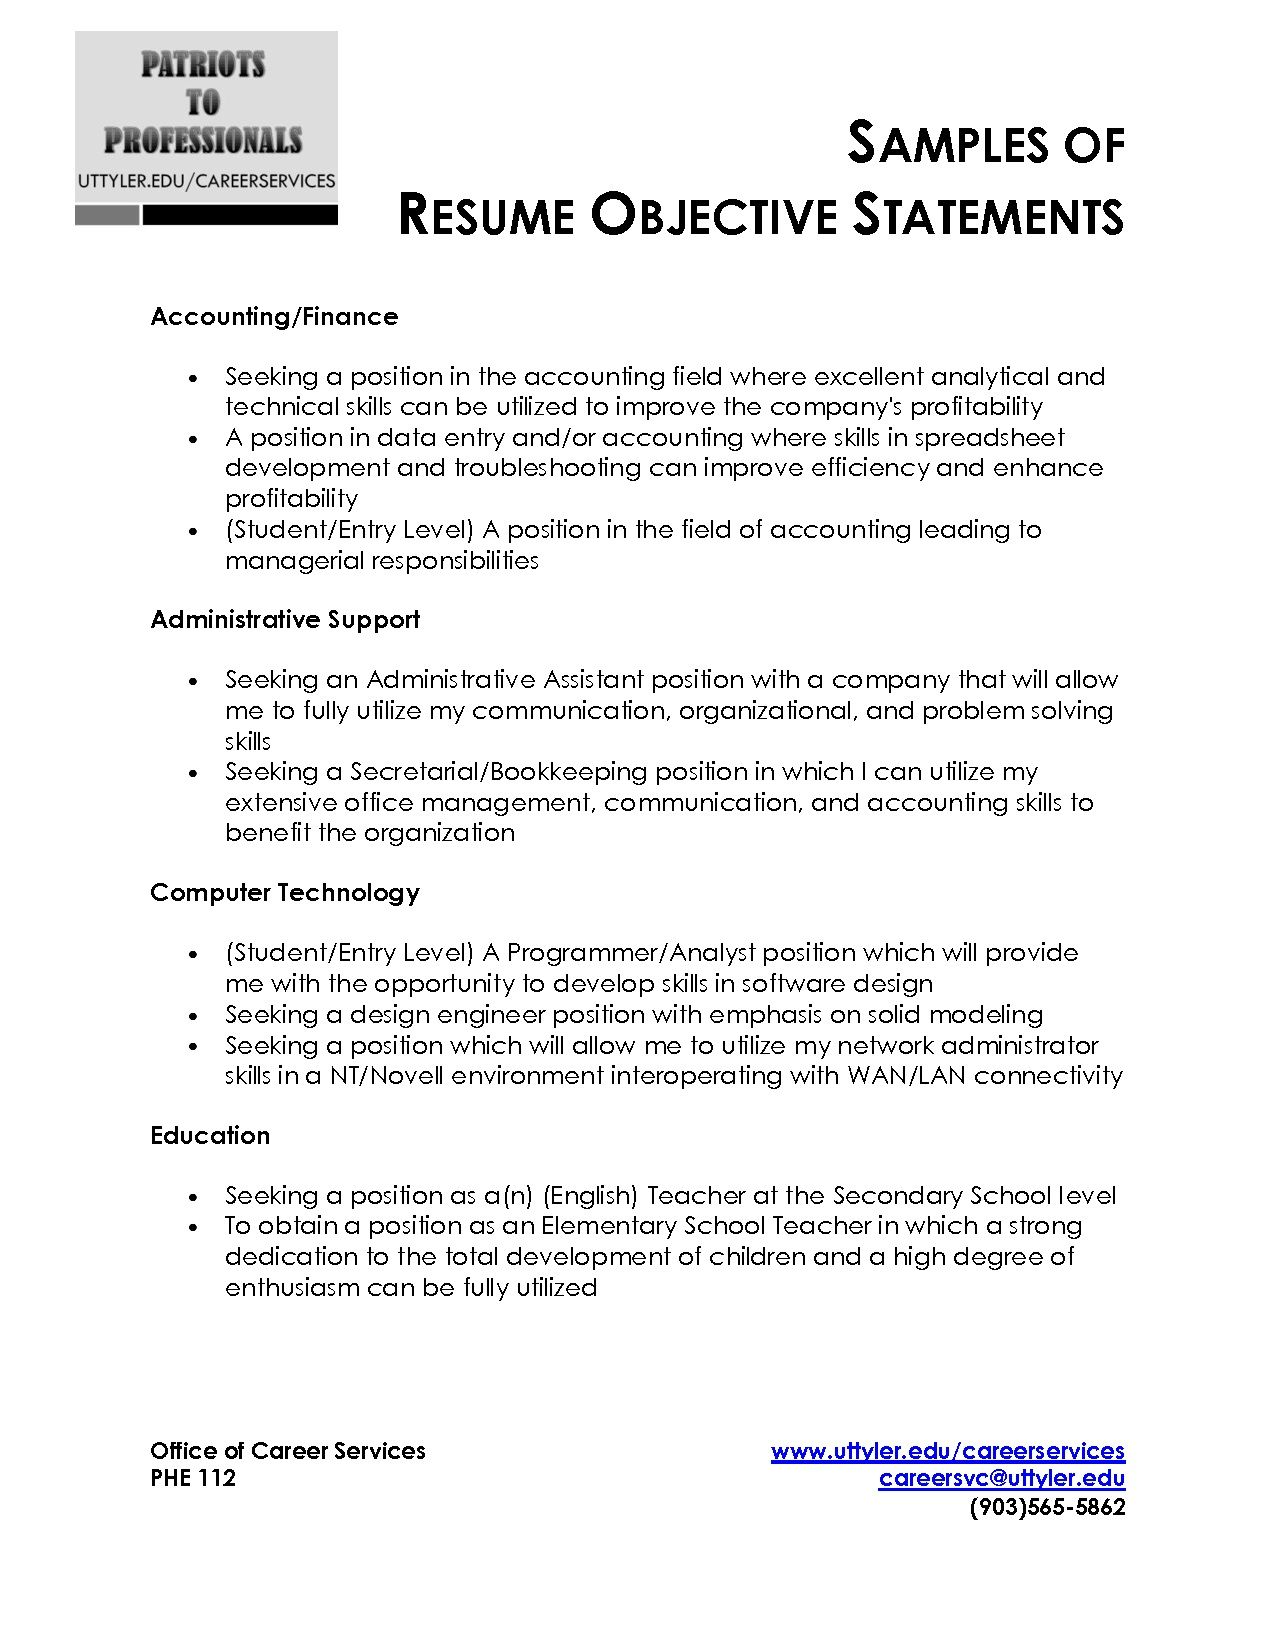 Sample Resume Objective Statement Adsbygoogle Window - Resumes For Internships